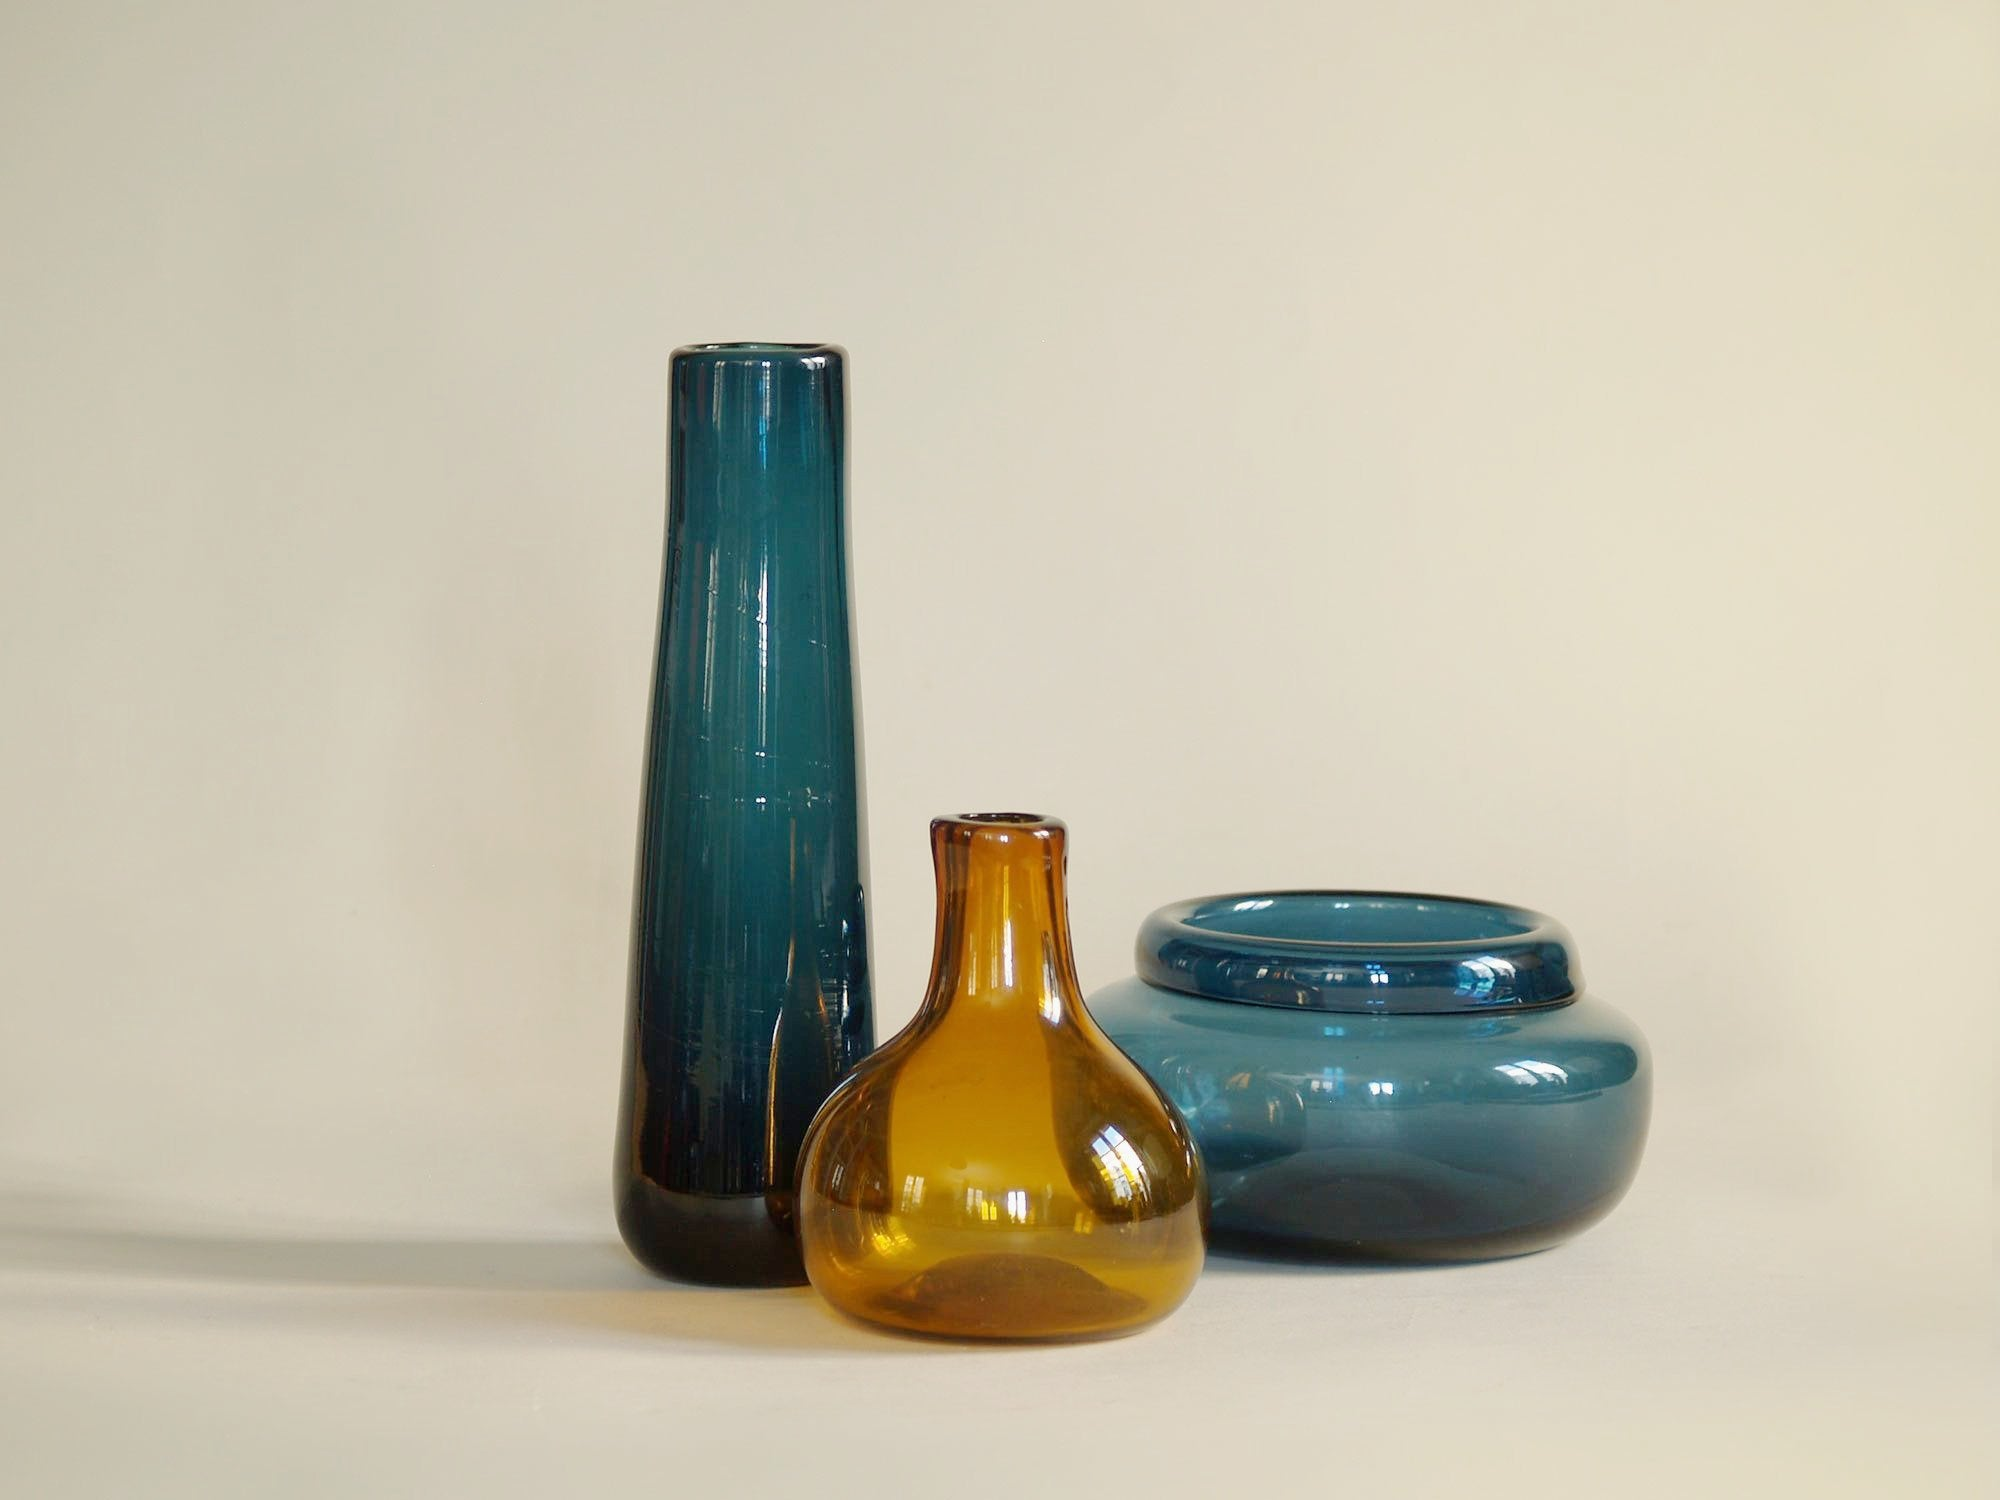 Ensemble de vases en verre soufflé par Claude Morin, France (1979)..Blown glass Set vases by Claude Morin, France (1979)